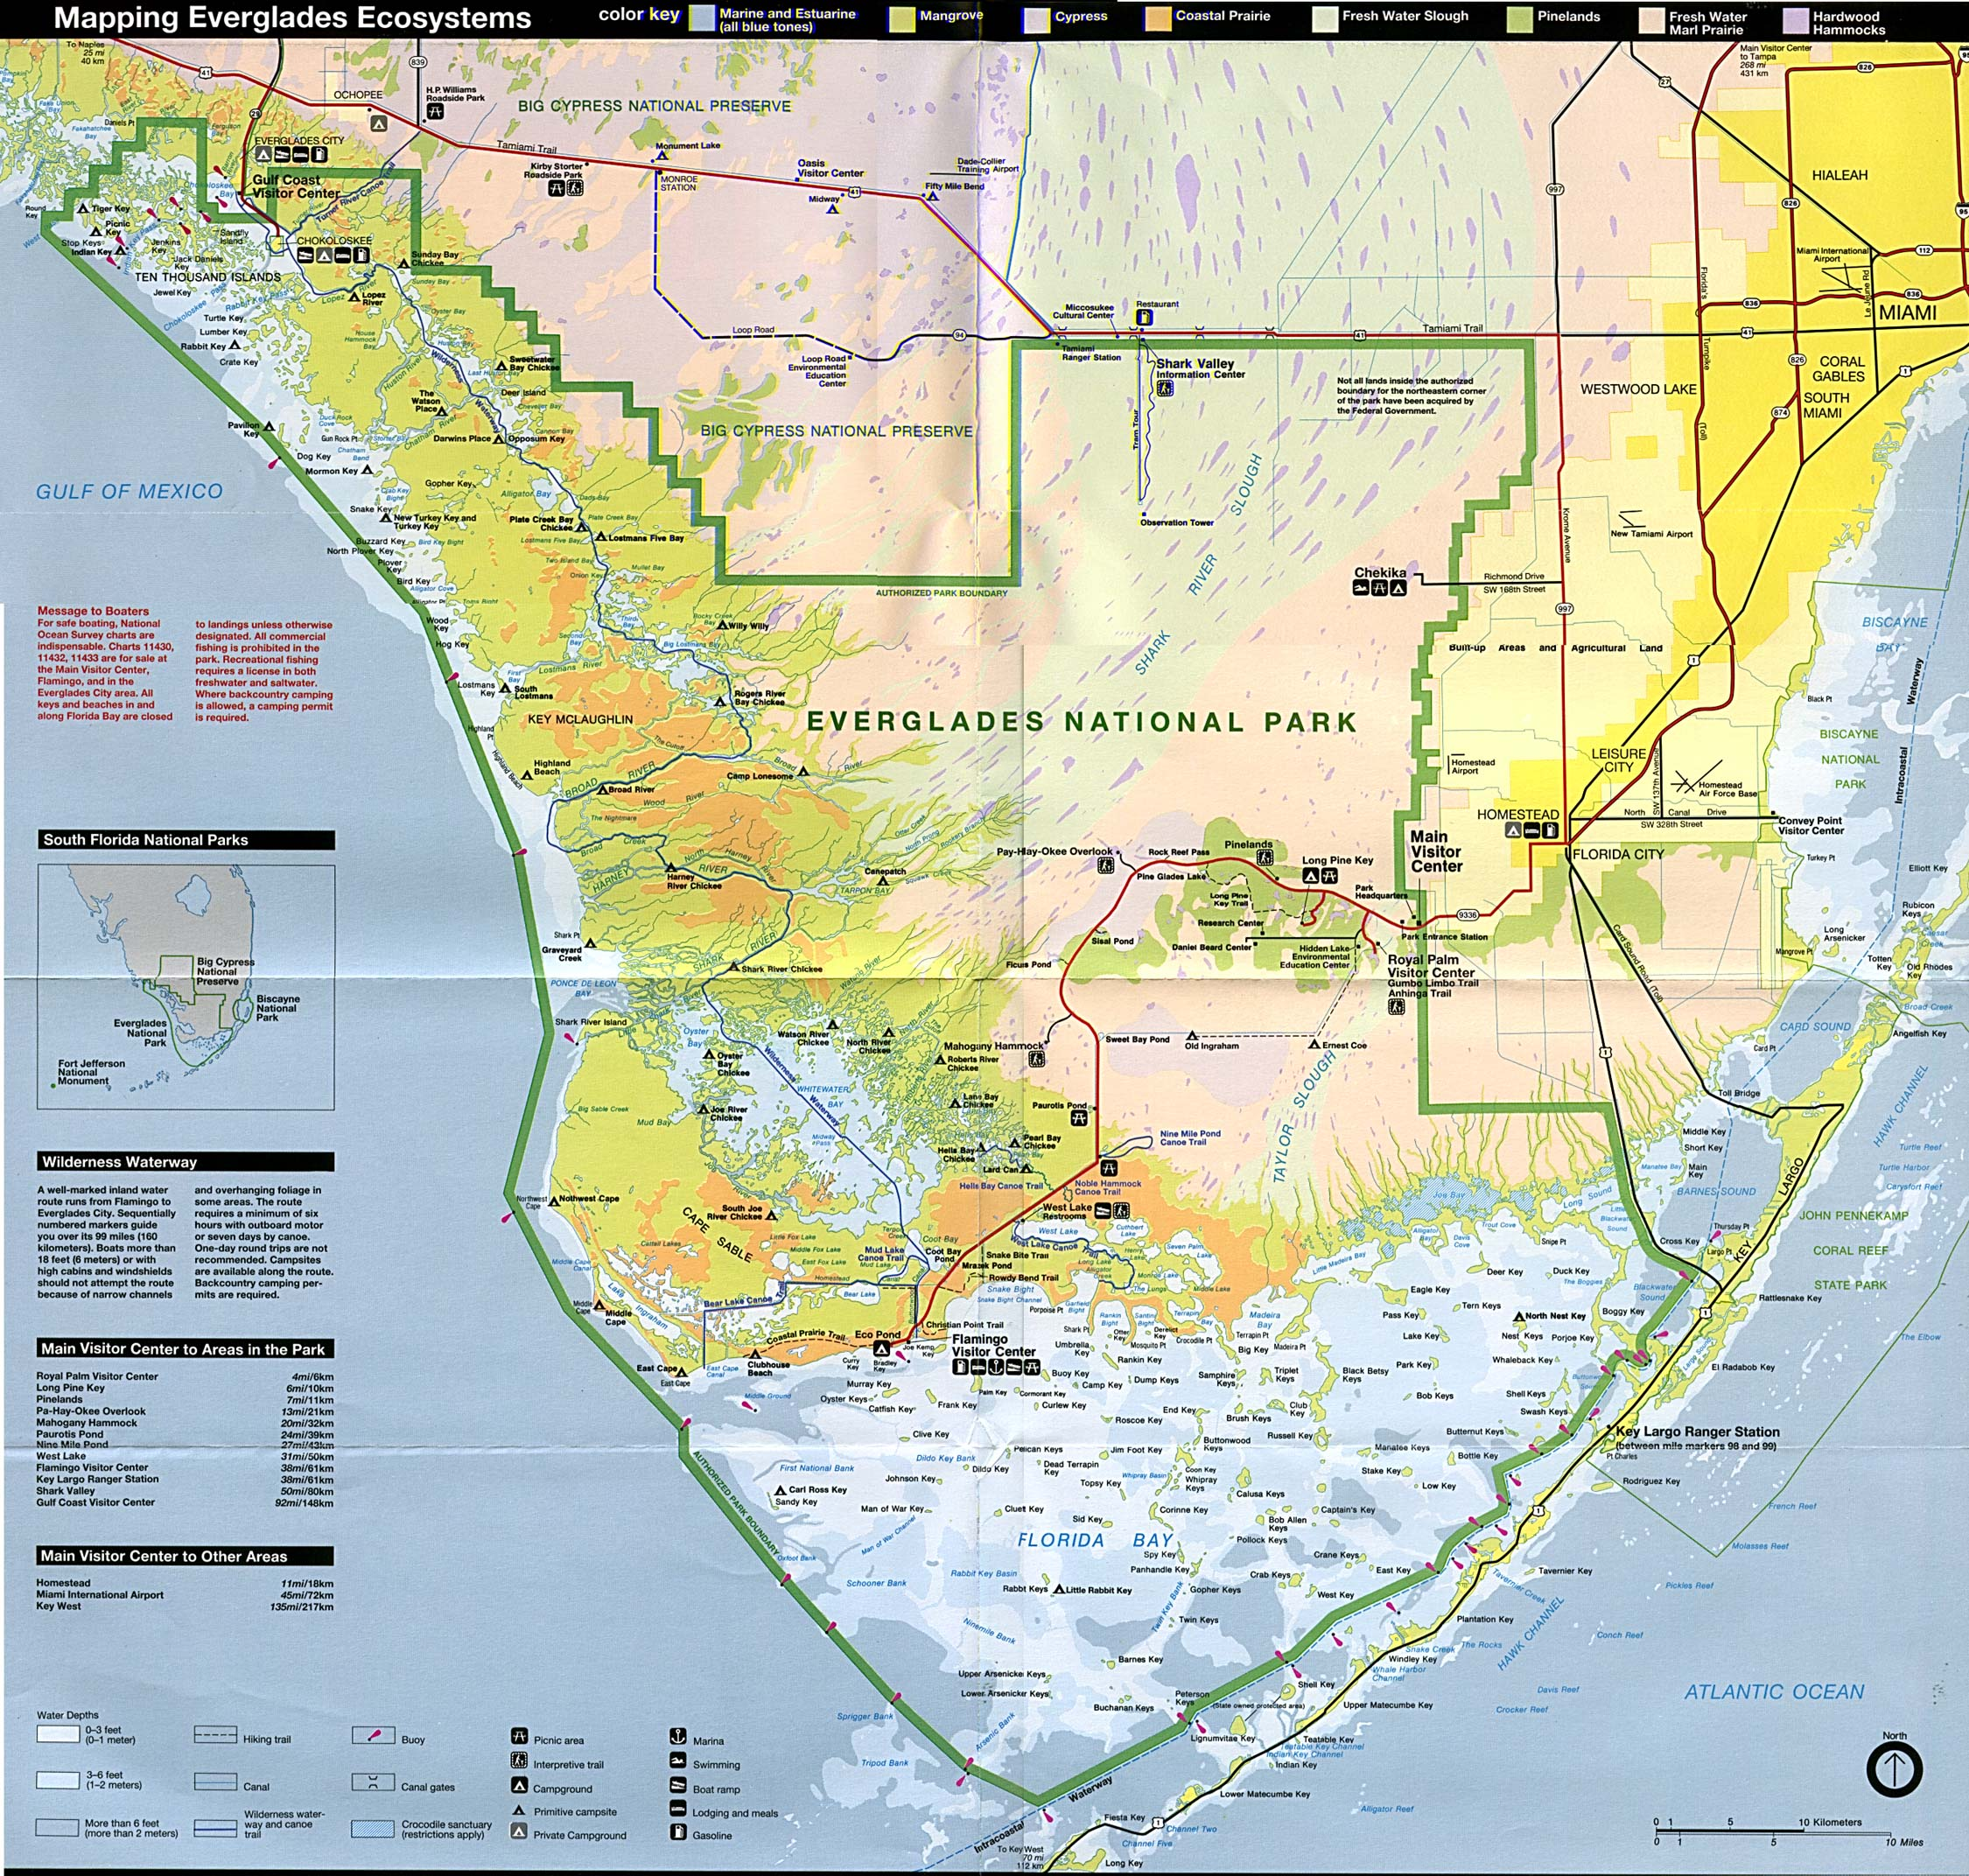 Where do the Water Conservation Areas End and Everglades National